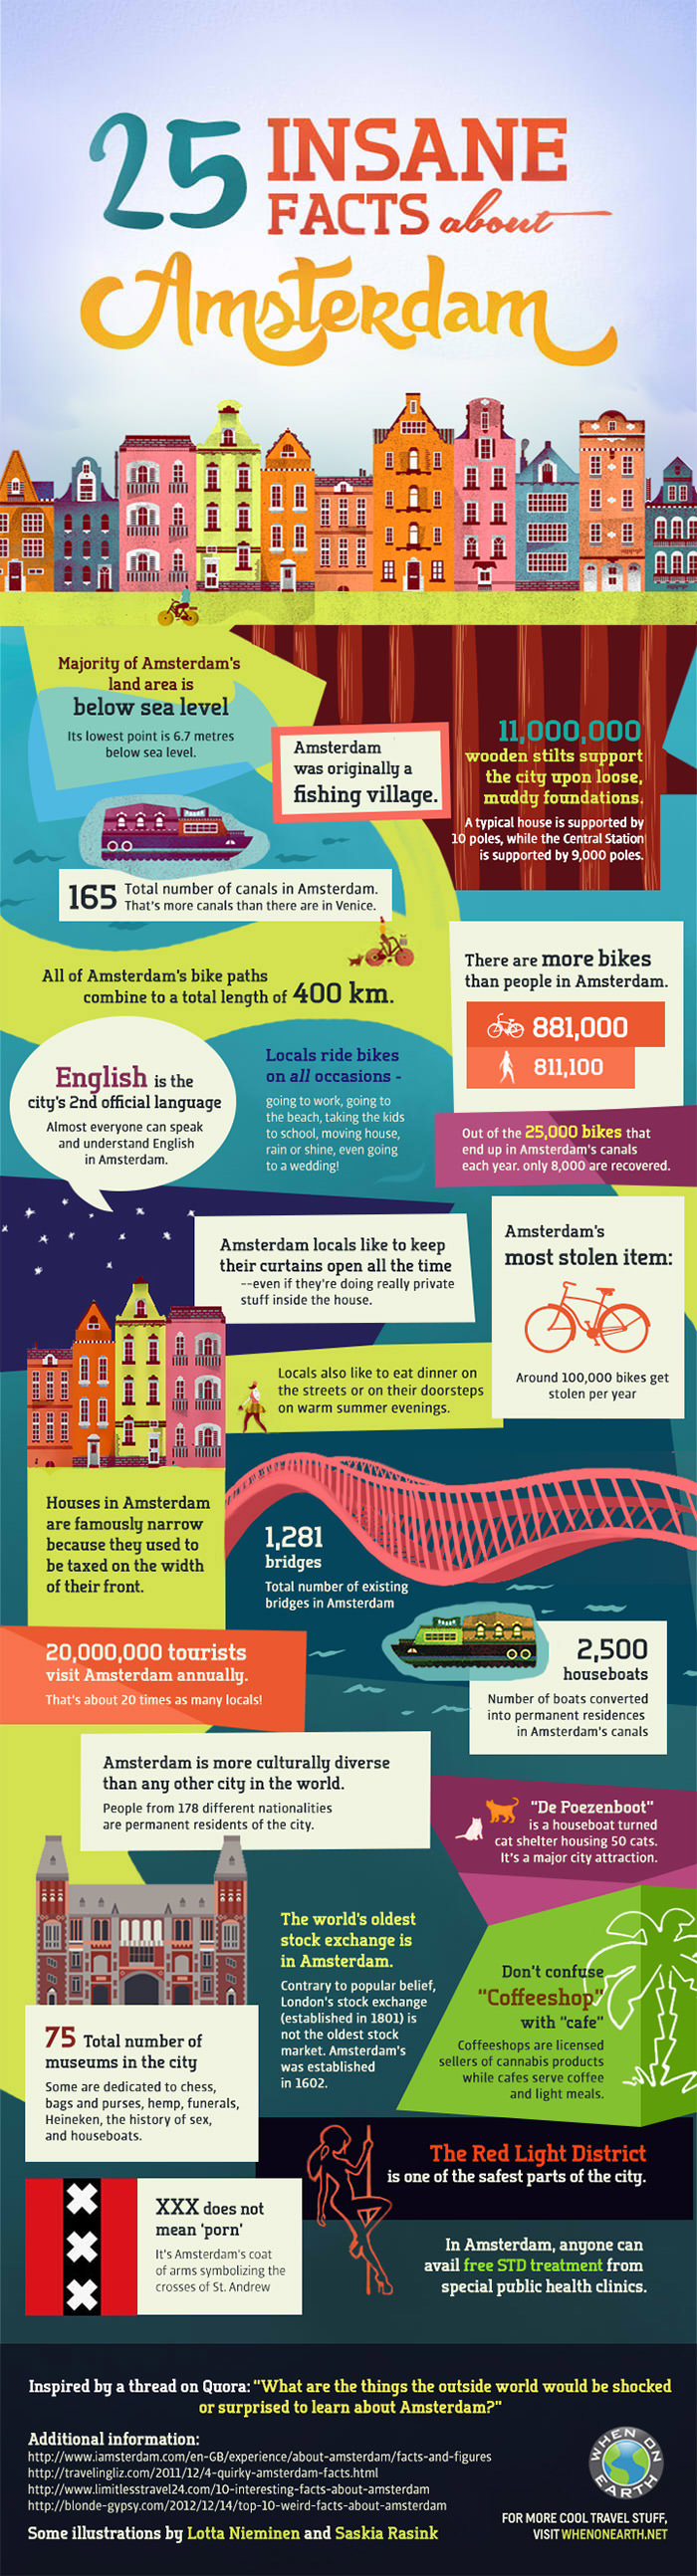 insane-facts-about-amsterdam